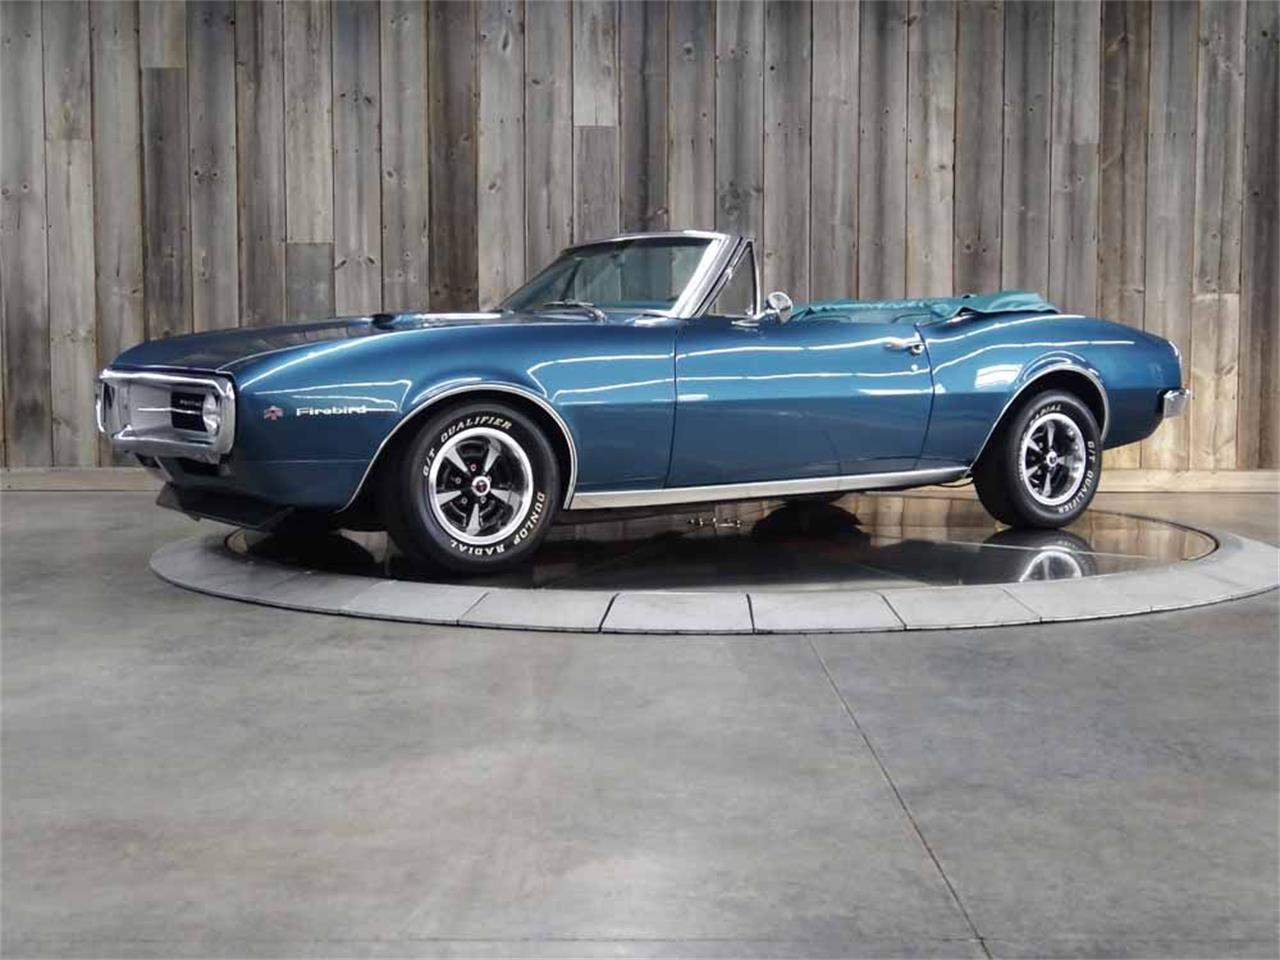 Large Picture of 1967 Pontiac Firebird - $34,900.00 - P2F9